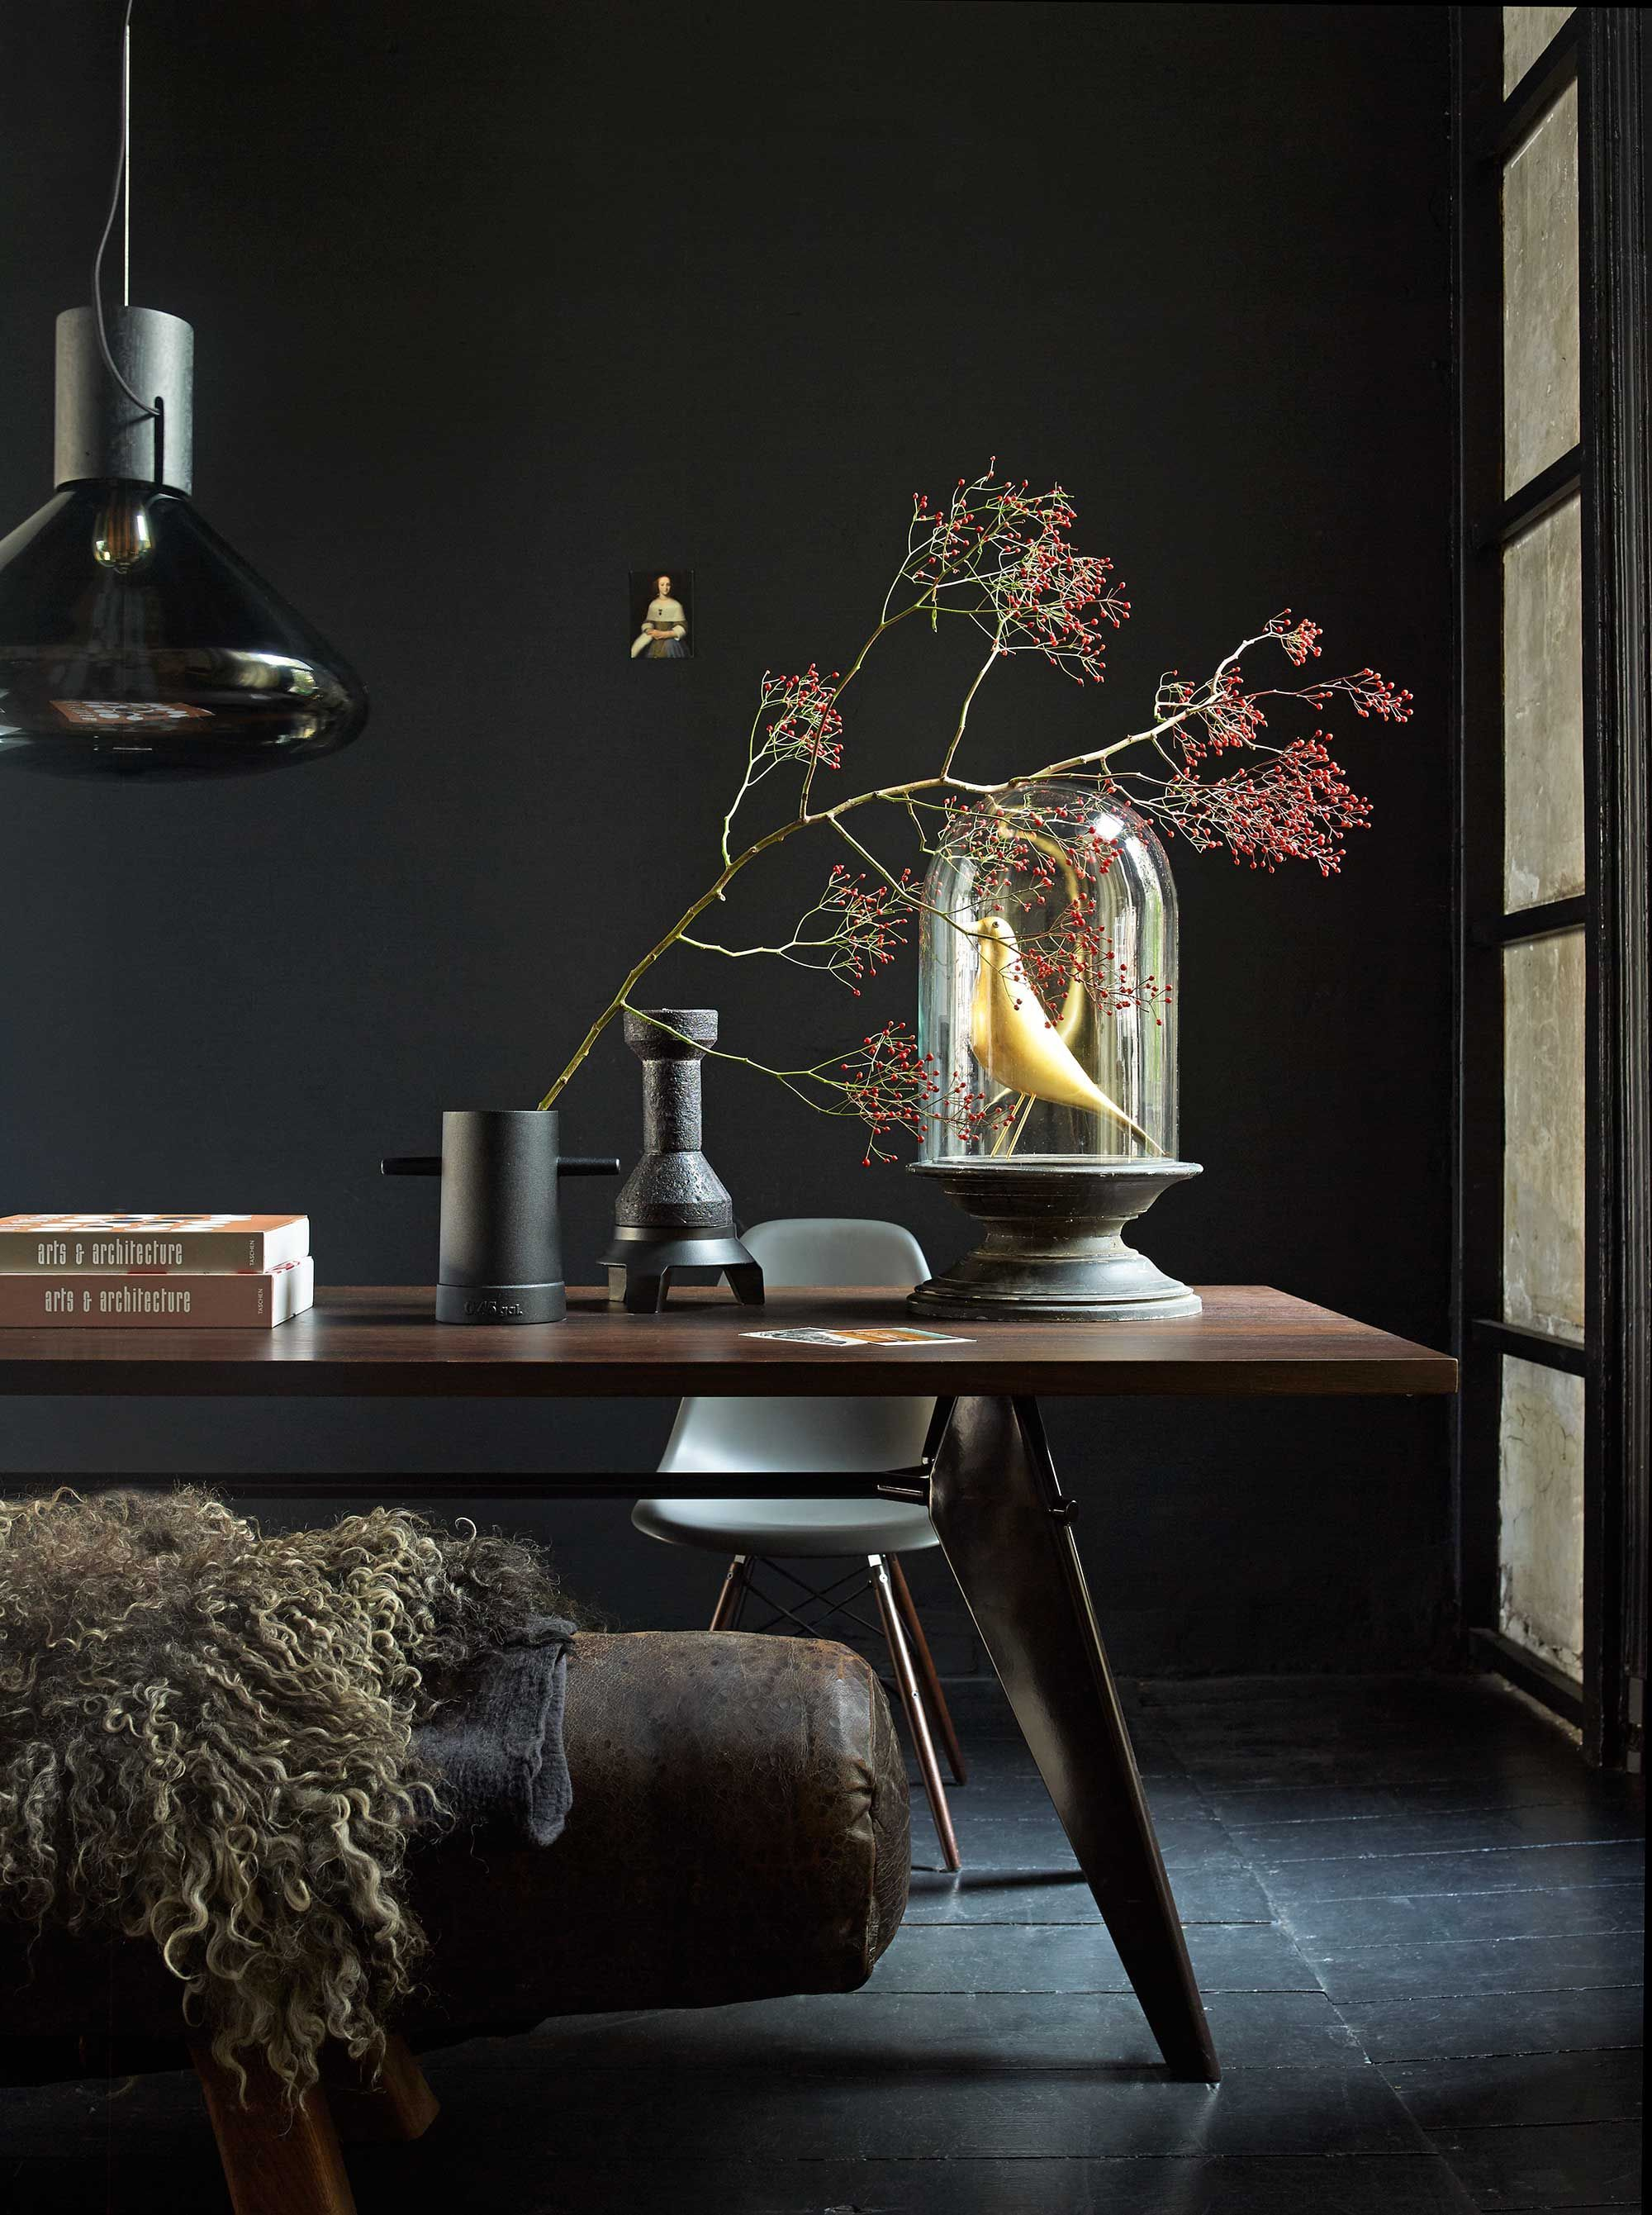 Some beautiful interior design tips of the use of dark or black interior elements